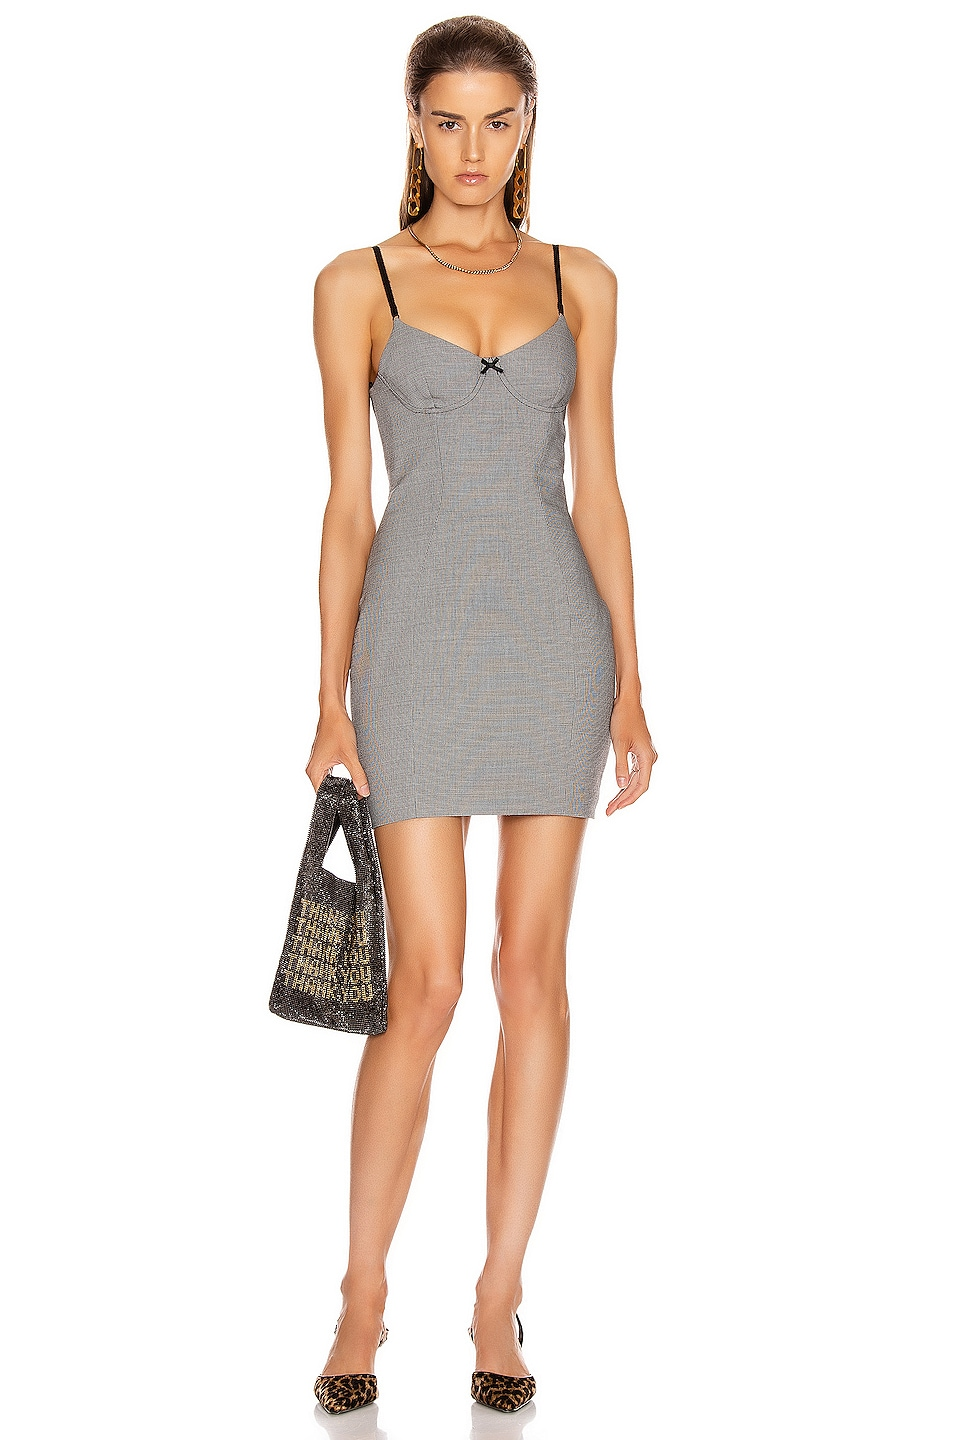 Image 1 of Alexander Wang Fitted Dress in Black & White Houndstooth